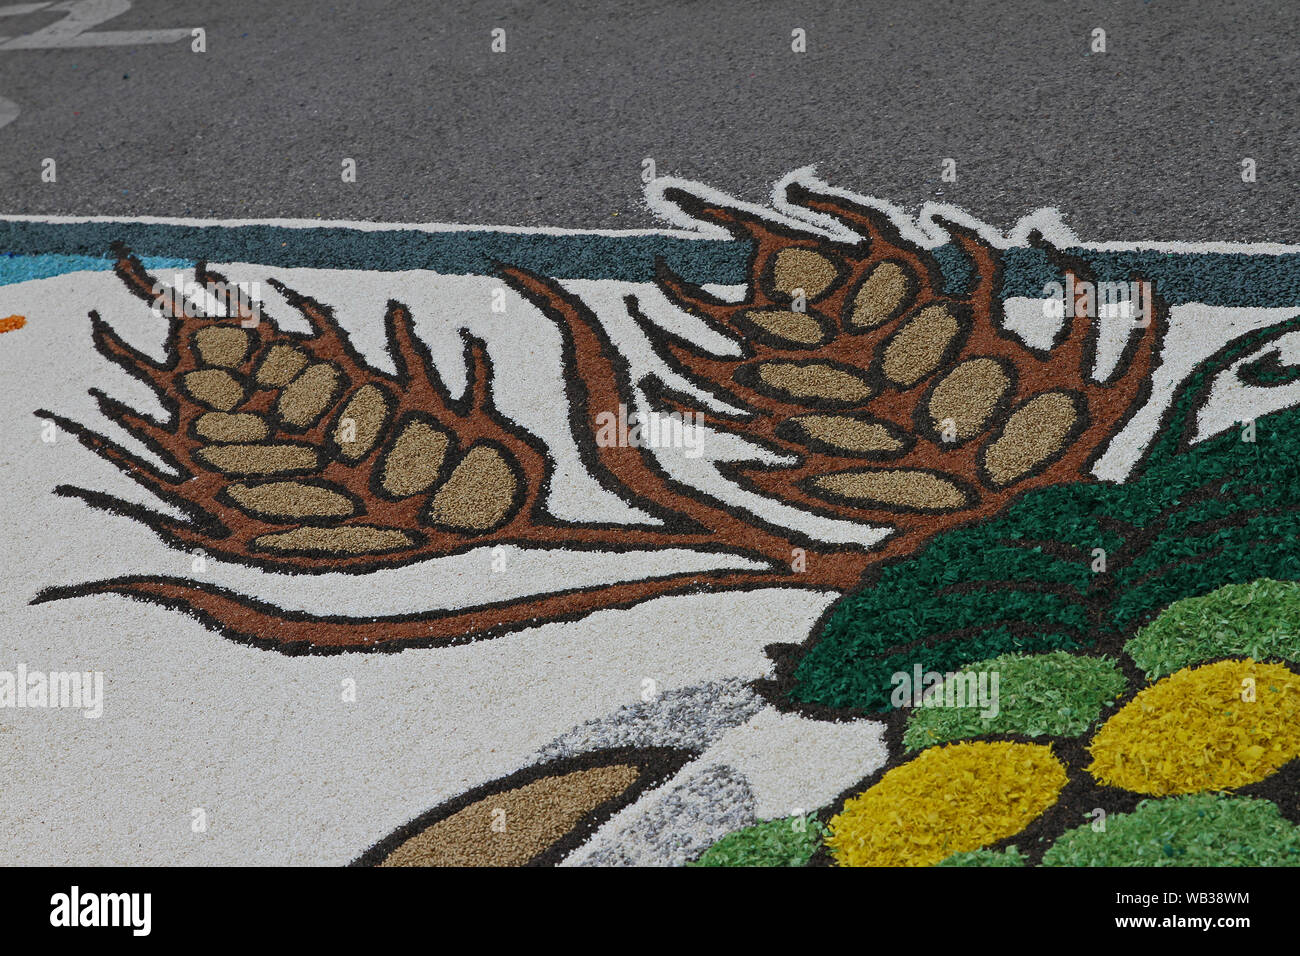 flower petals, grains, rice, beans and seeds making a pattern of ears of barley on a road in the village of Castelraimondo to celebrate Corpus Christi Stock Photo